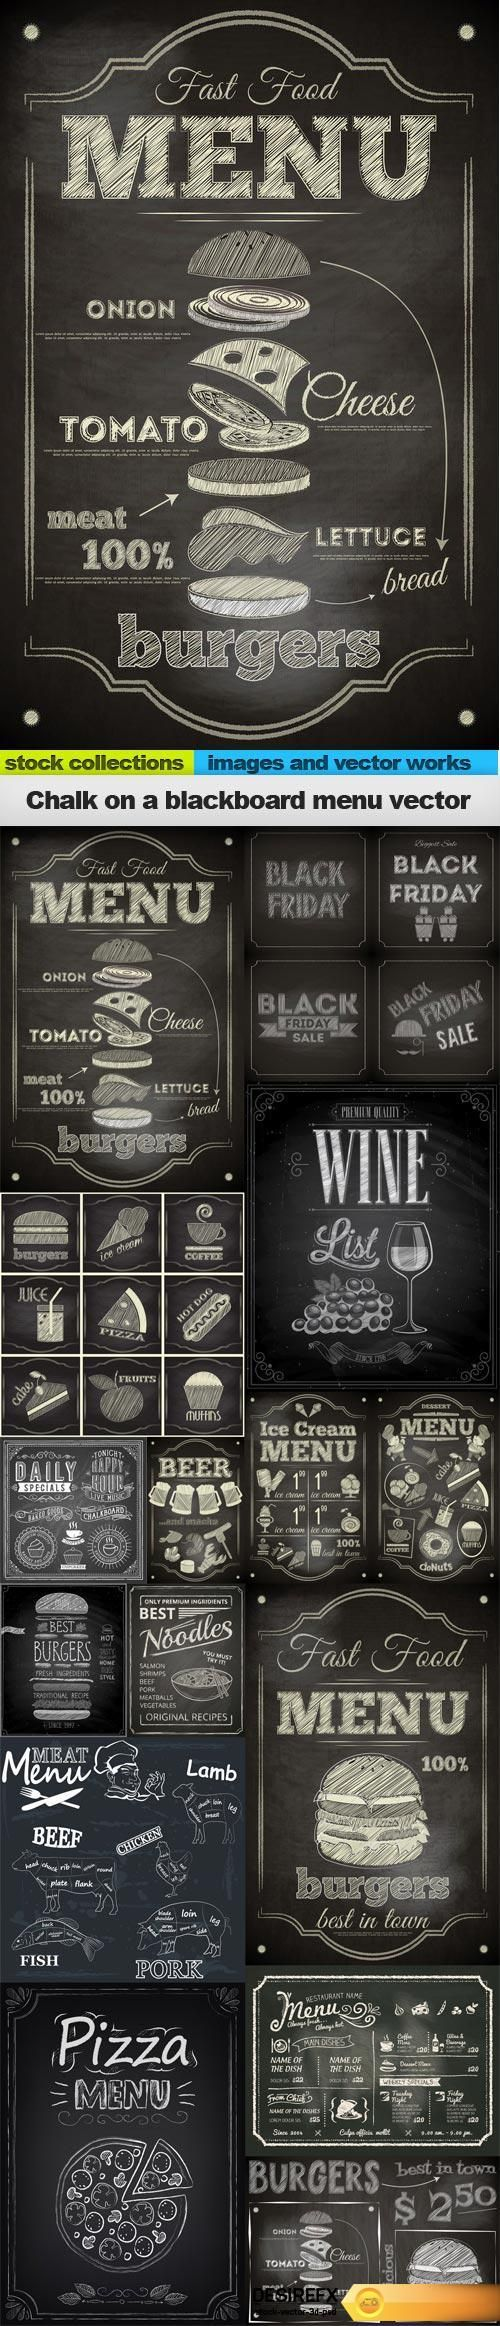 Find your Grapfix Desire With US http://www.desirefx.me/chalk-on-a-blackboard-menu-vector-15-x-eps/